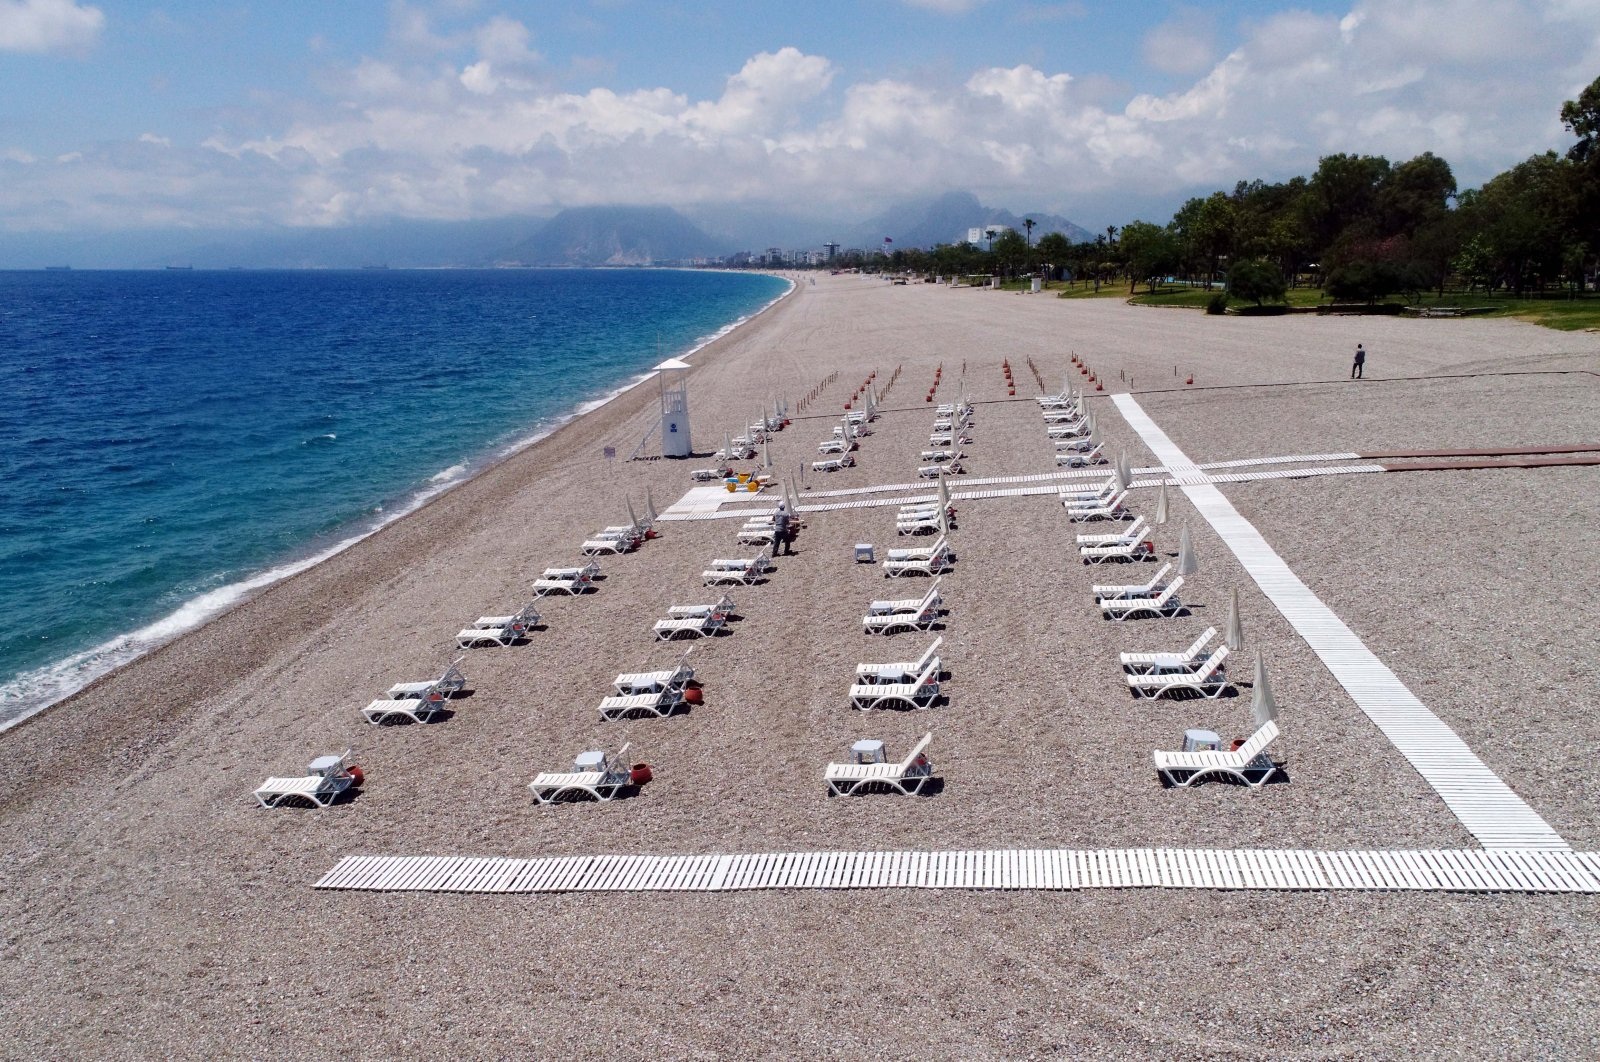 A beach in the southern resort city of Antalya seen reorganized in accordance with social distancing rules, southern Turkey, June 1, 2020. (DHA Photo)